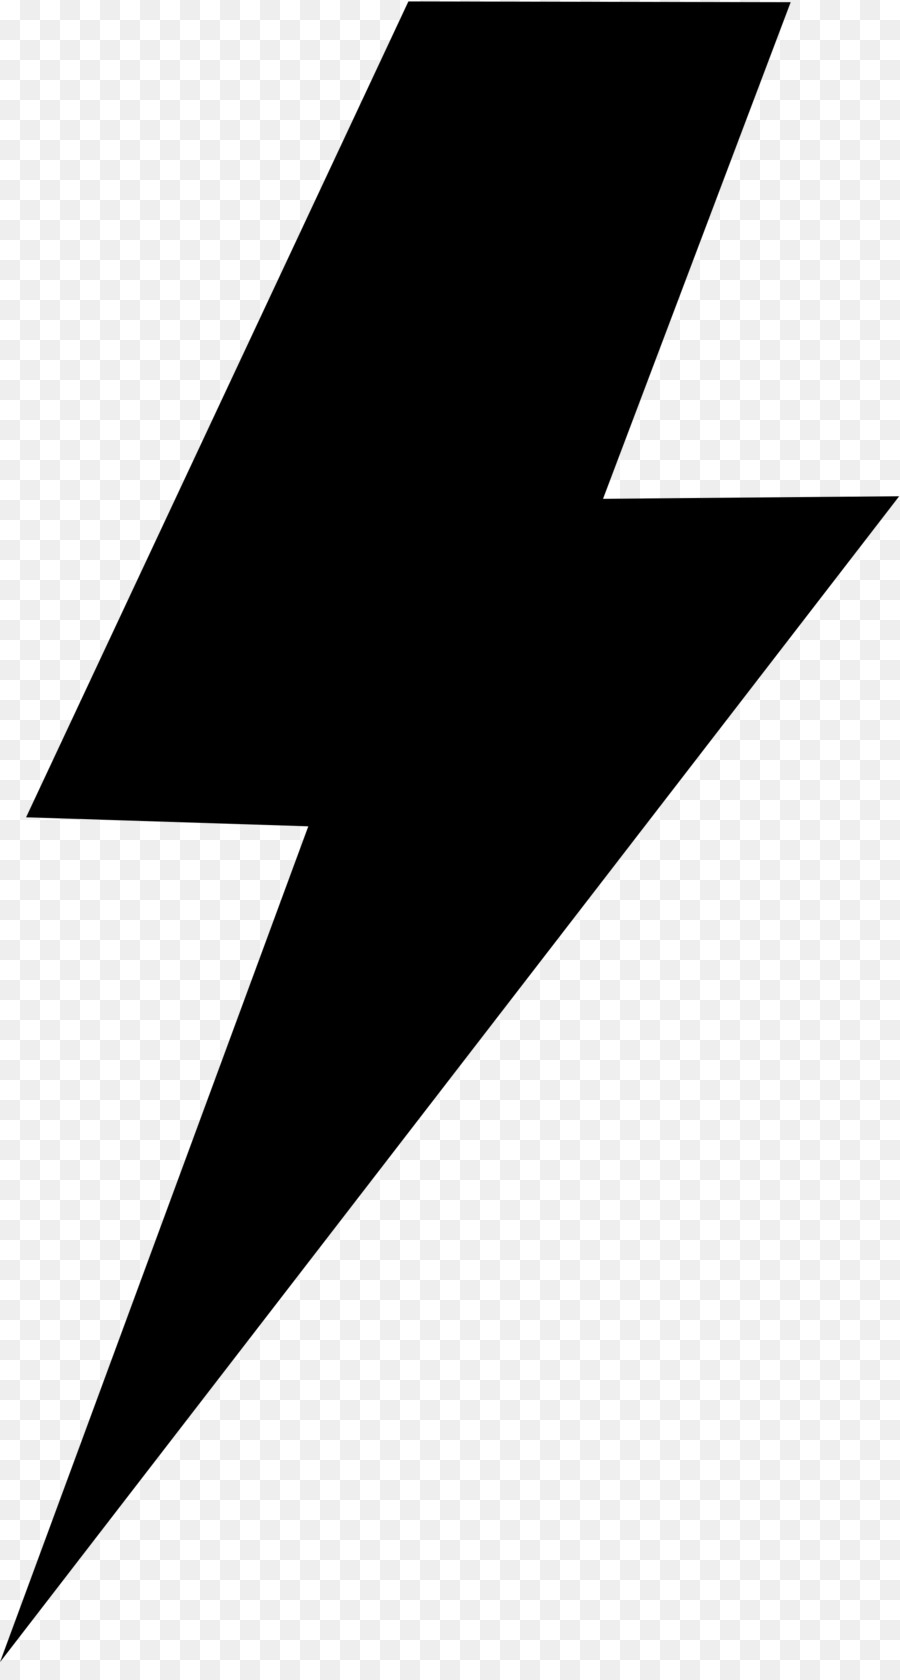 Thunder bolt clipart clip art free stock Lightning Cartoon clipart - Lightning, Black, Triangle ... clip art free stock